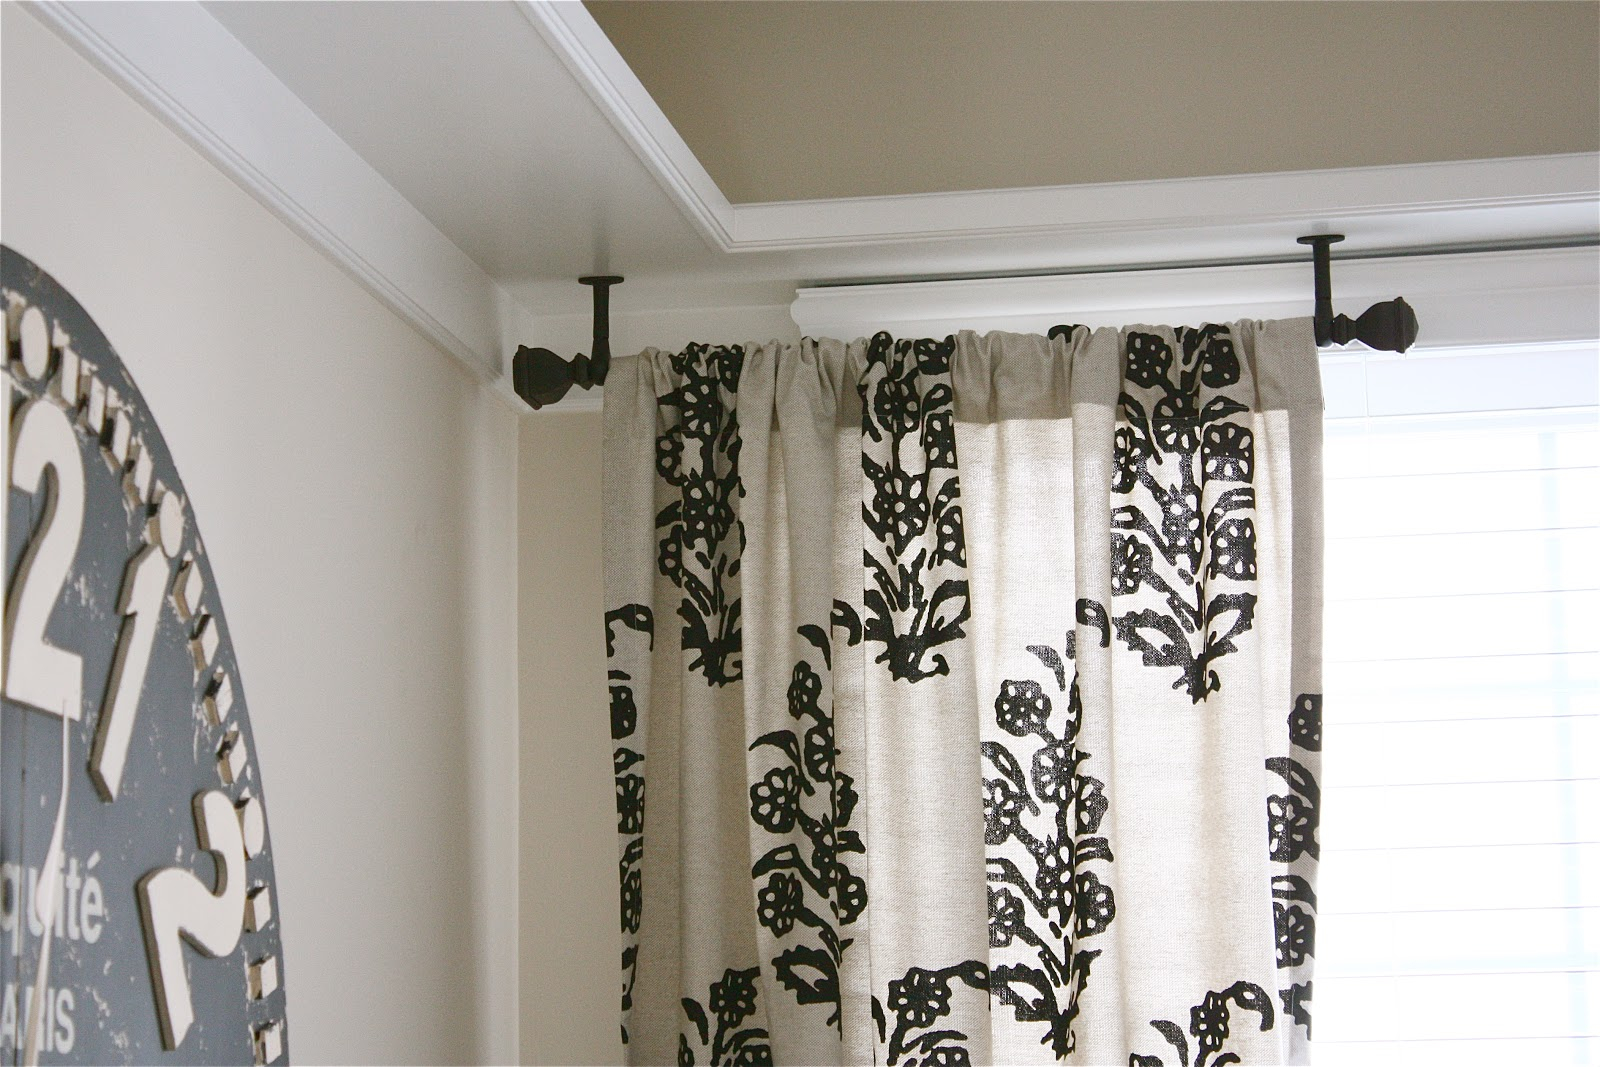 Curtains Ceiling Mounted Curtain Rod Ceiling Mounted Shower with regard to proportions 1600 X 1067